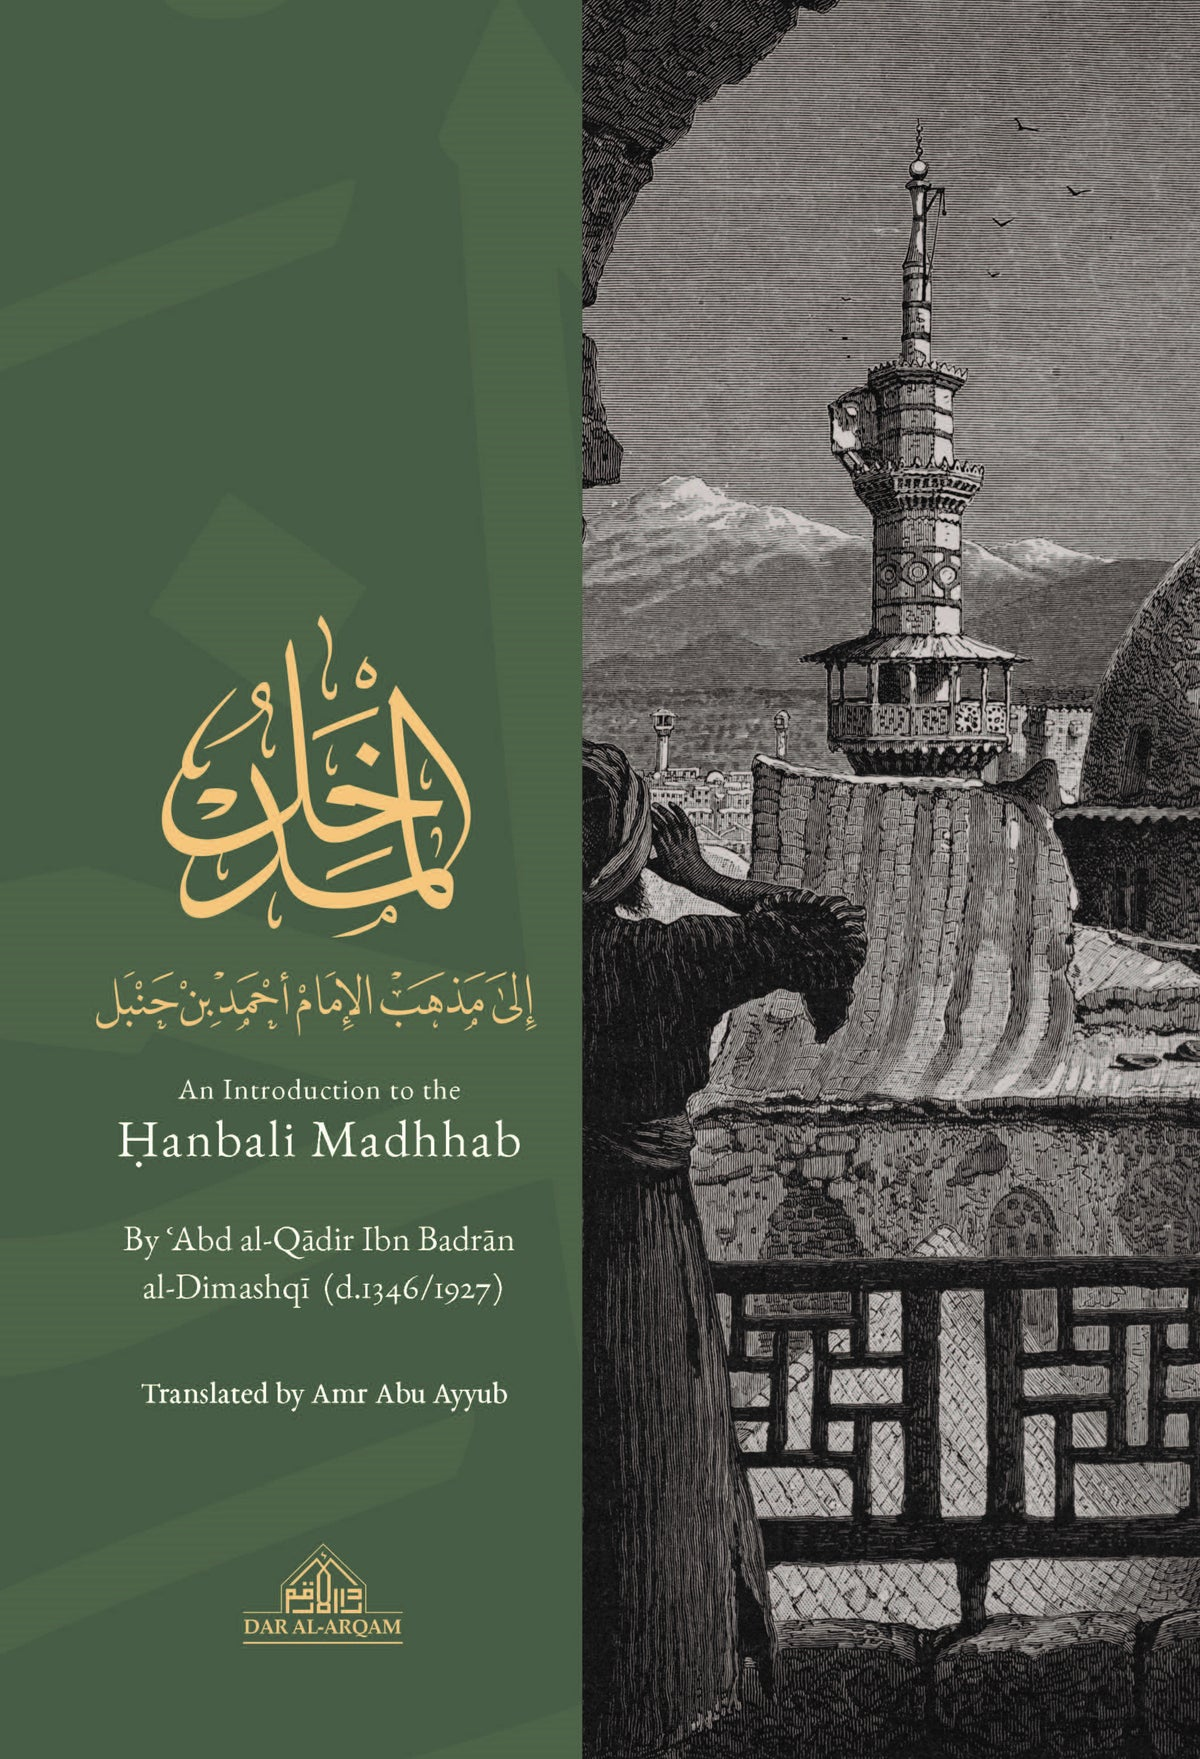 Image of An Introduction to the Hanbali Madhhab PB